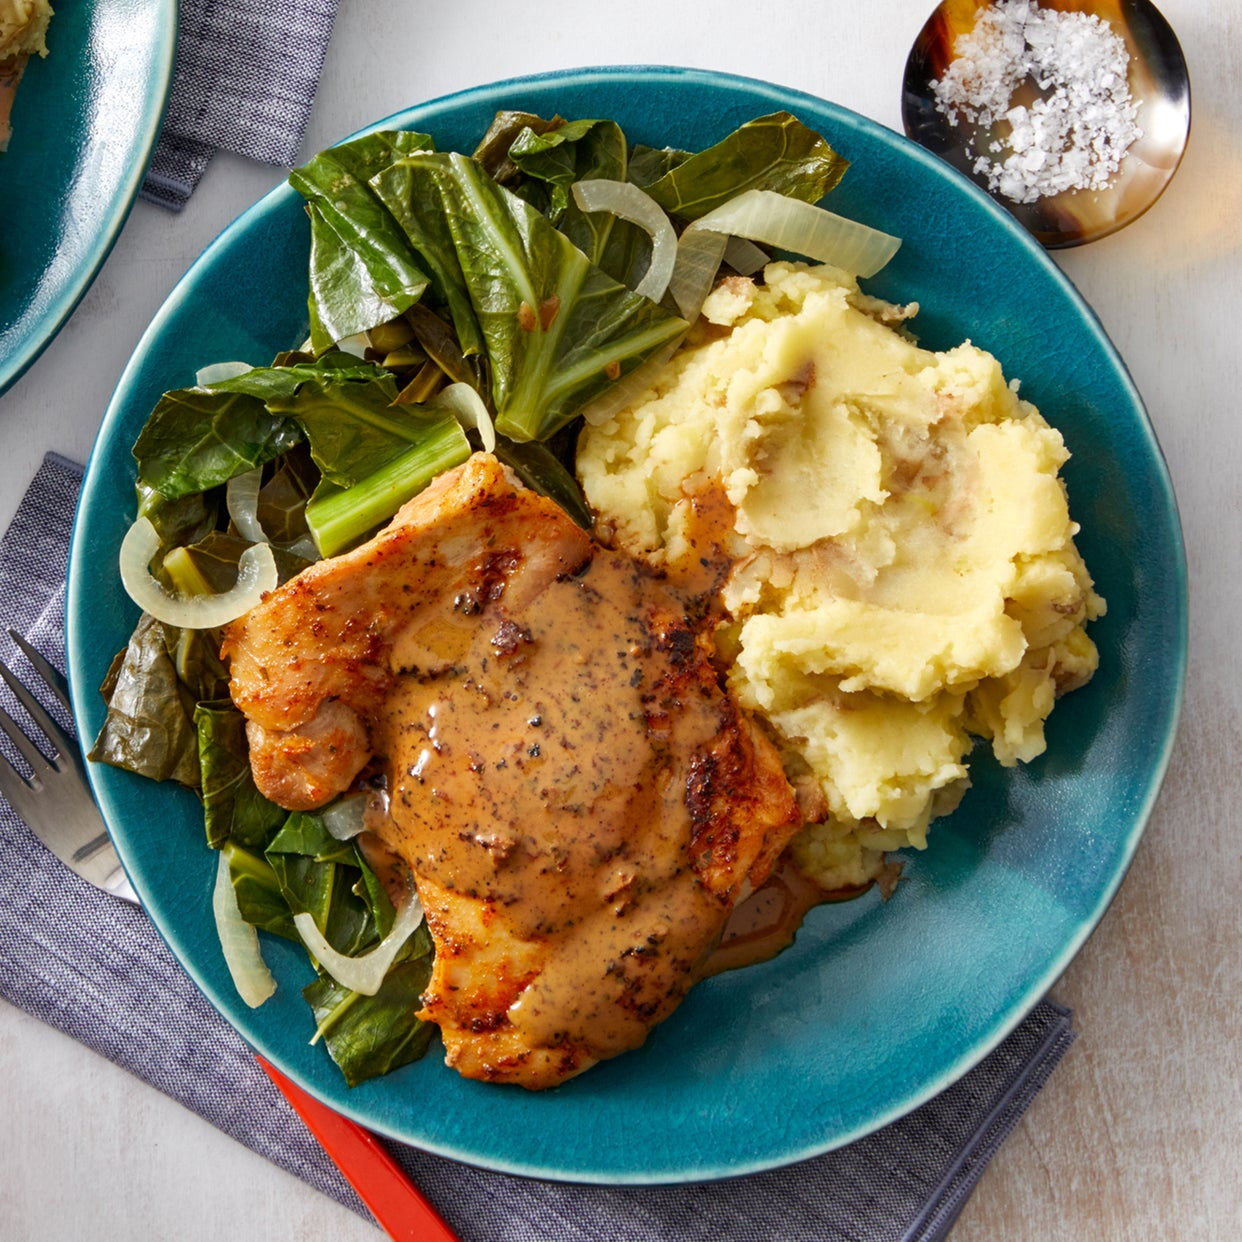 Spice-Rubbed Chicken Thighs with Maple Pan Sauce & Garlic Mashed Potatoes